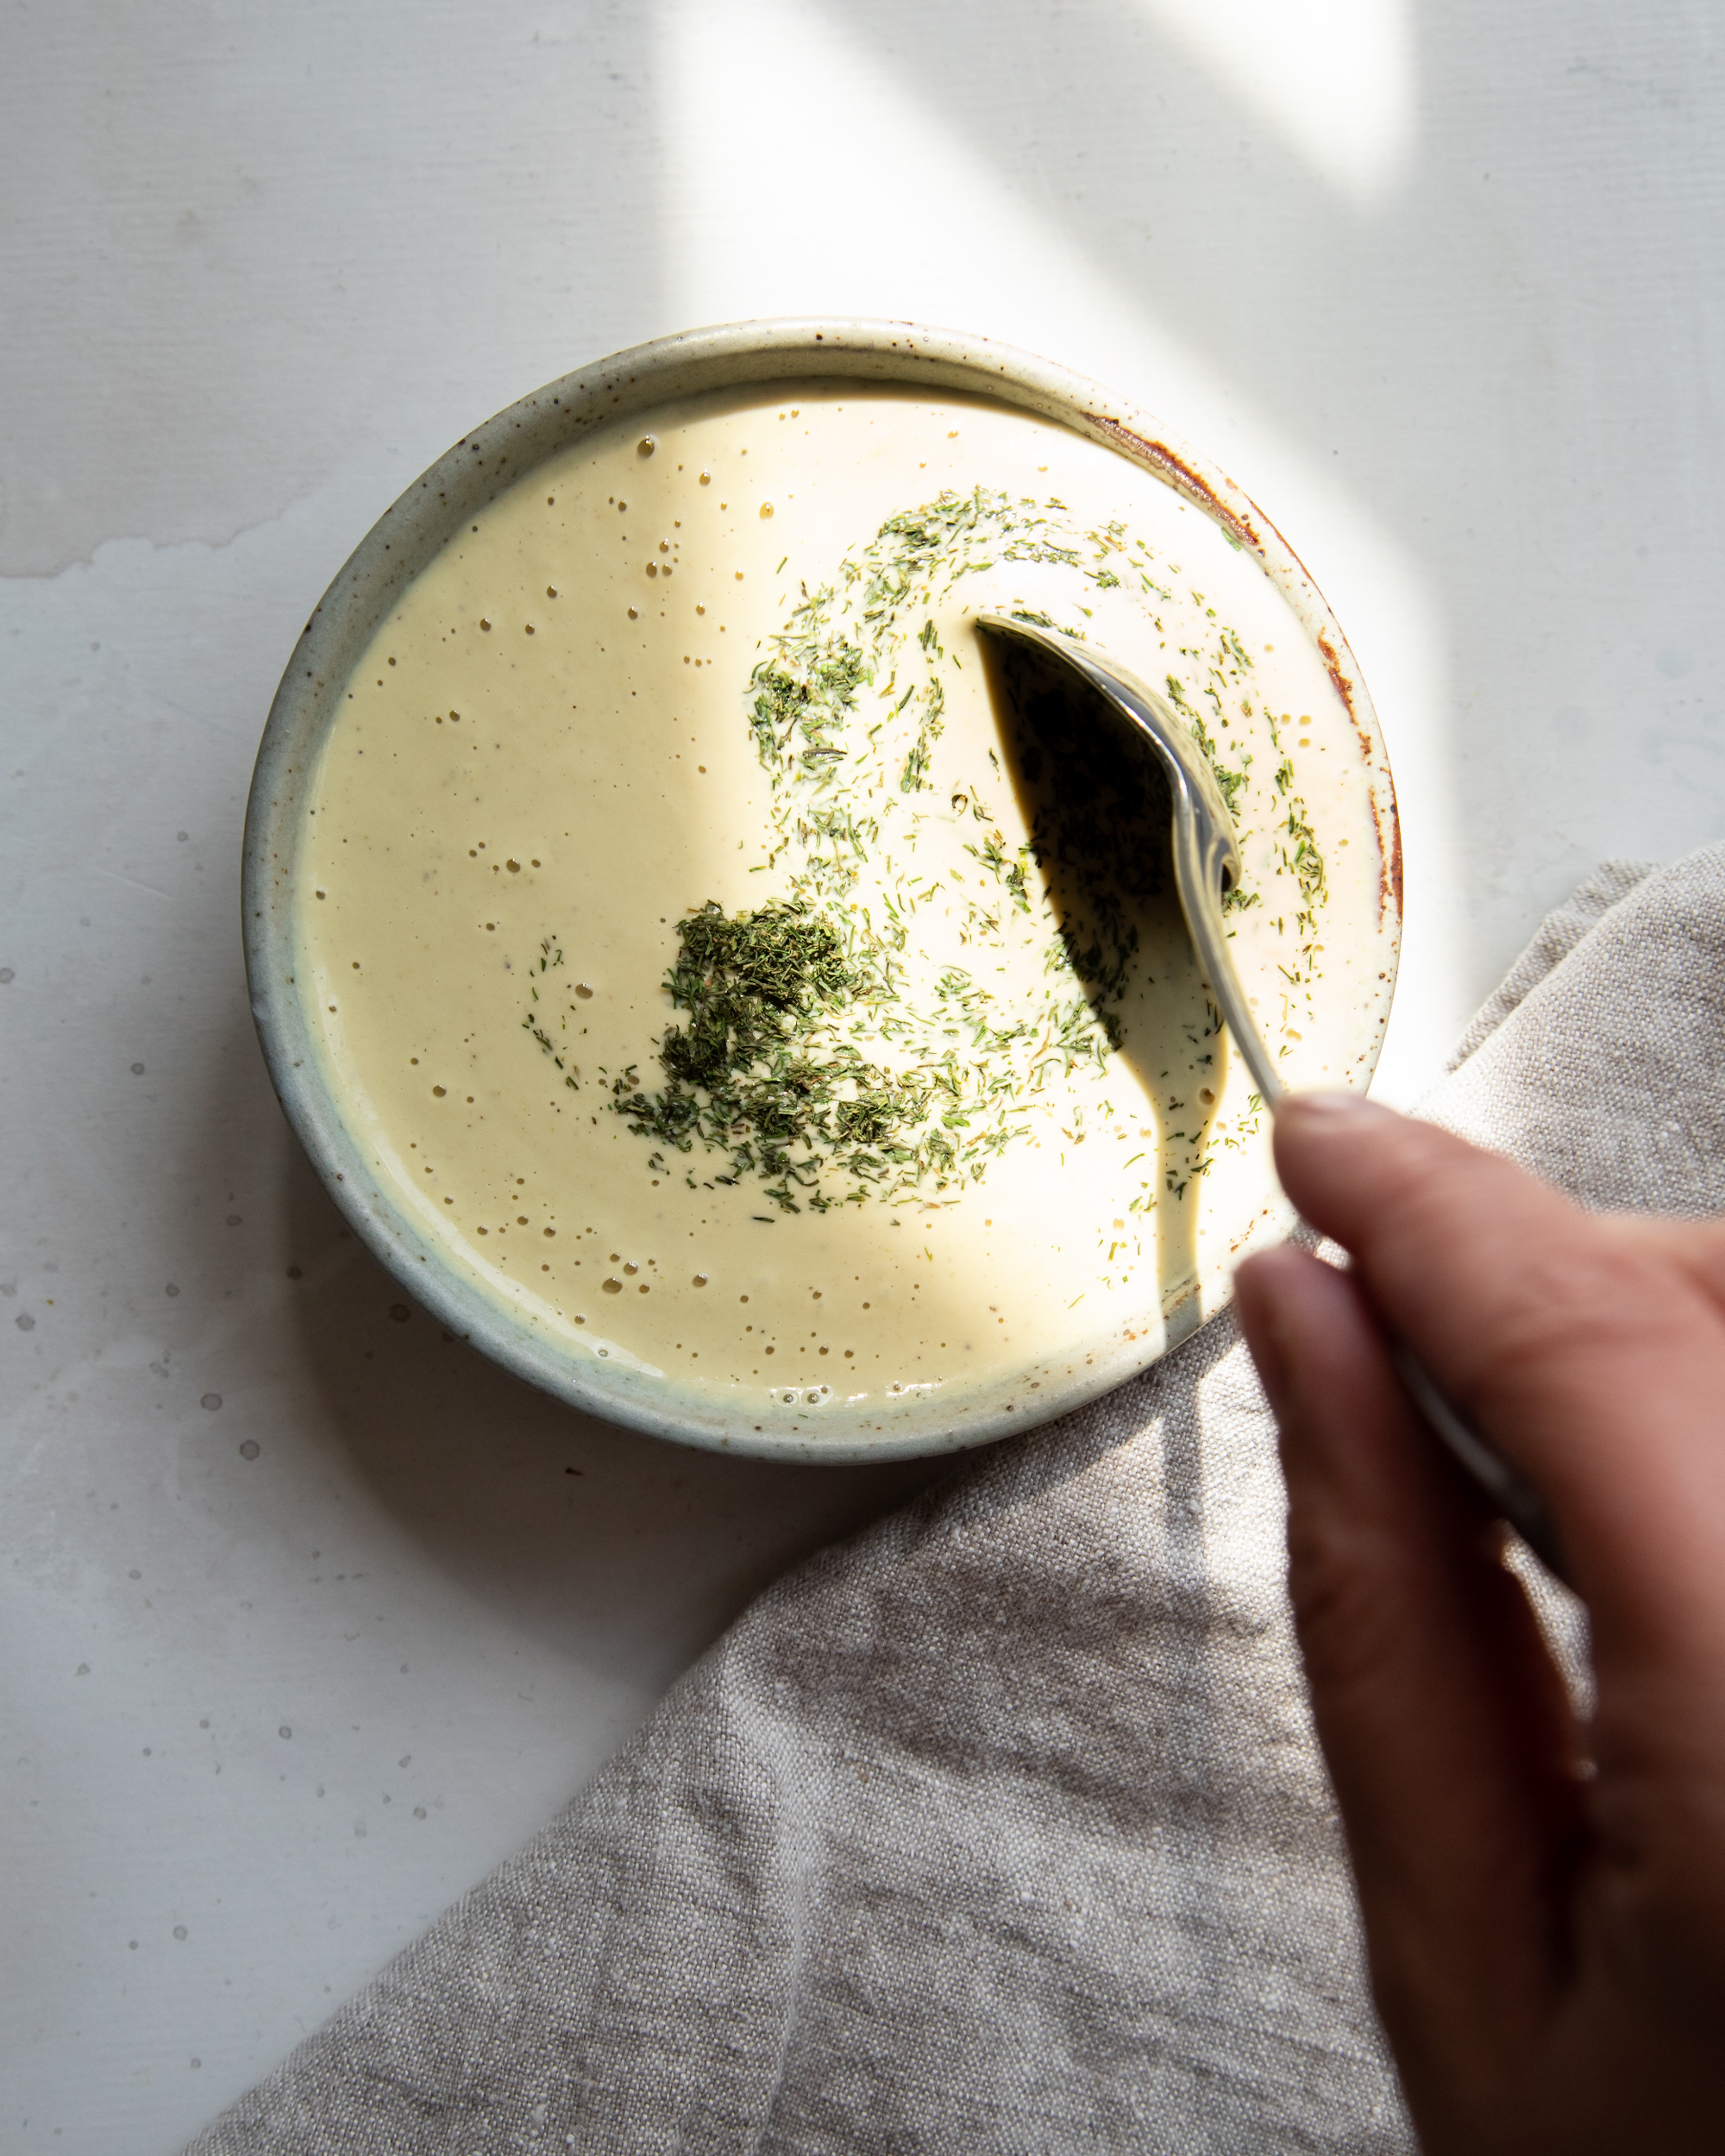 Image shows a hand stirring dried dill into a bowl of creamy dressing.